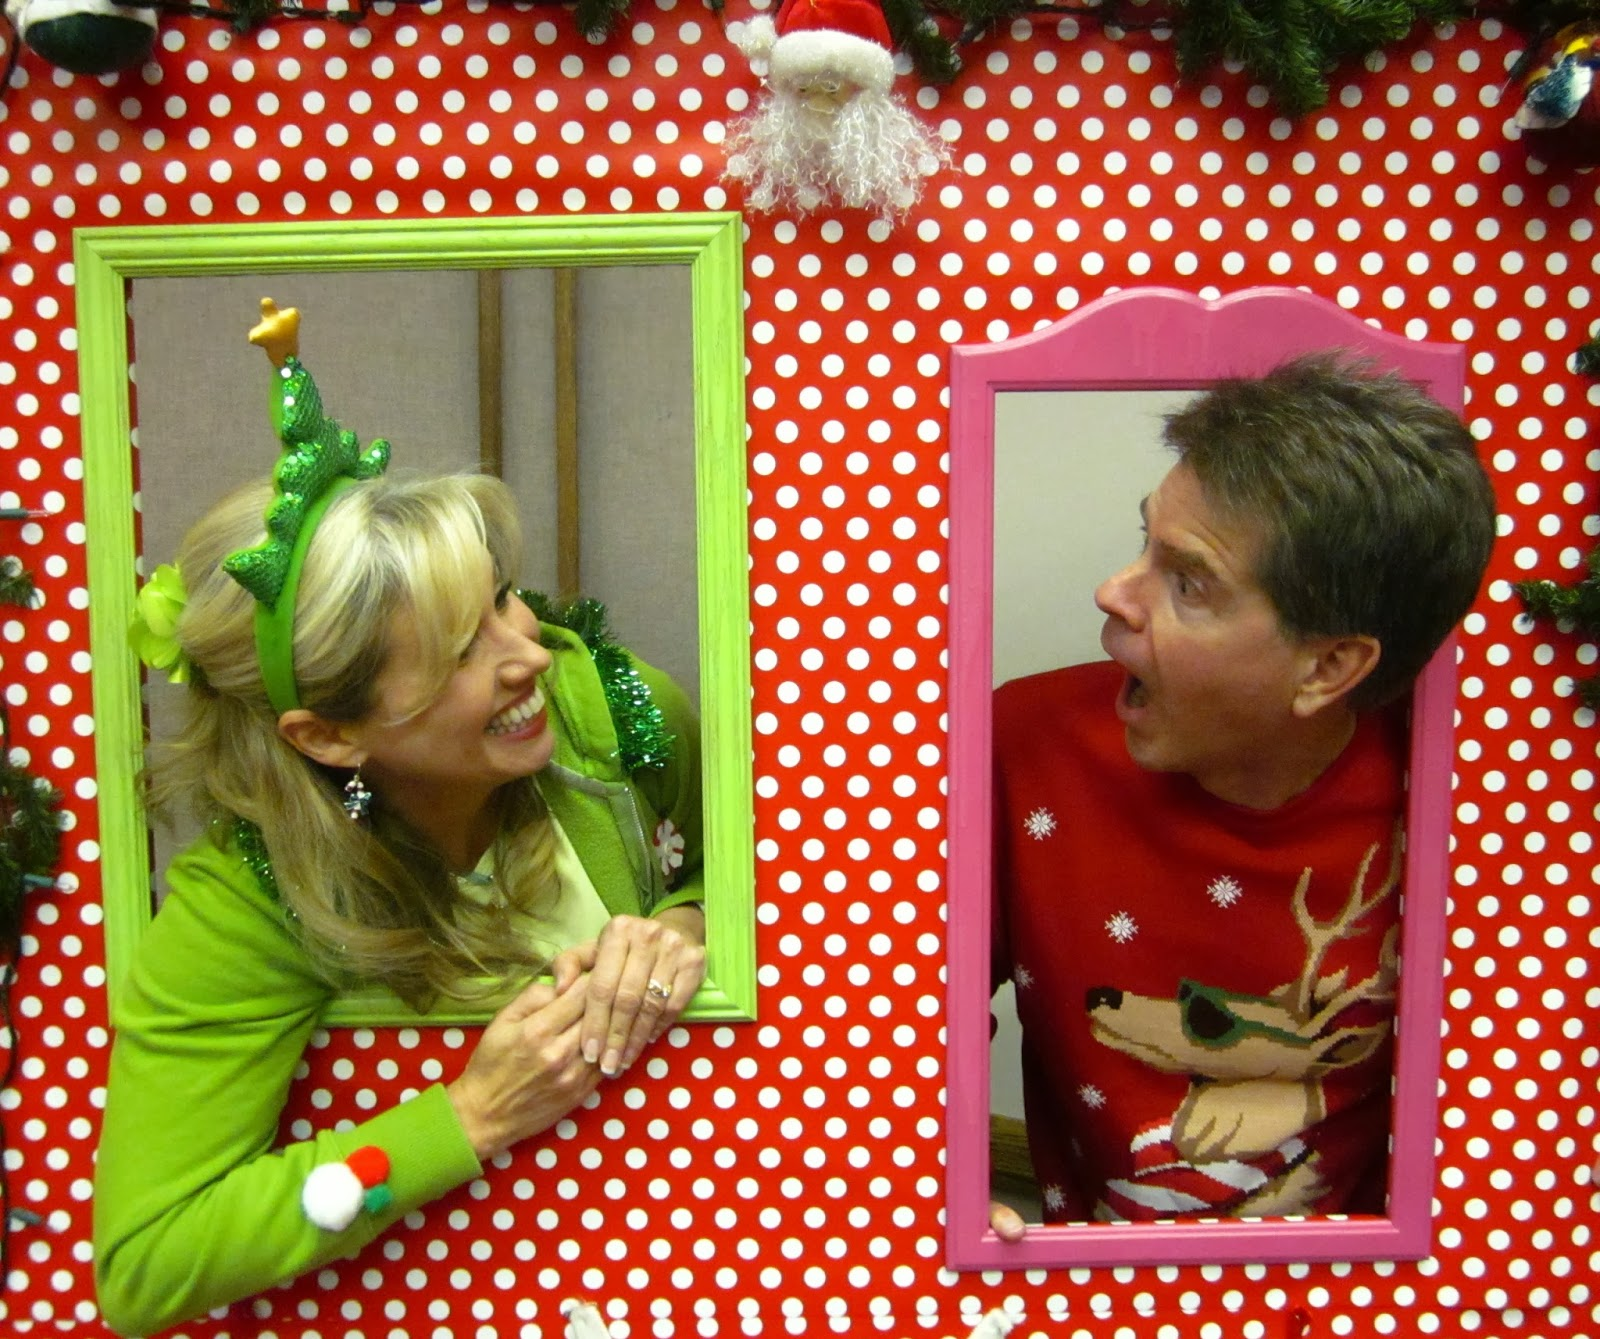 Honey I'm Home: Ugly Christmas Sweater Party Fun